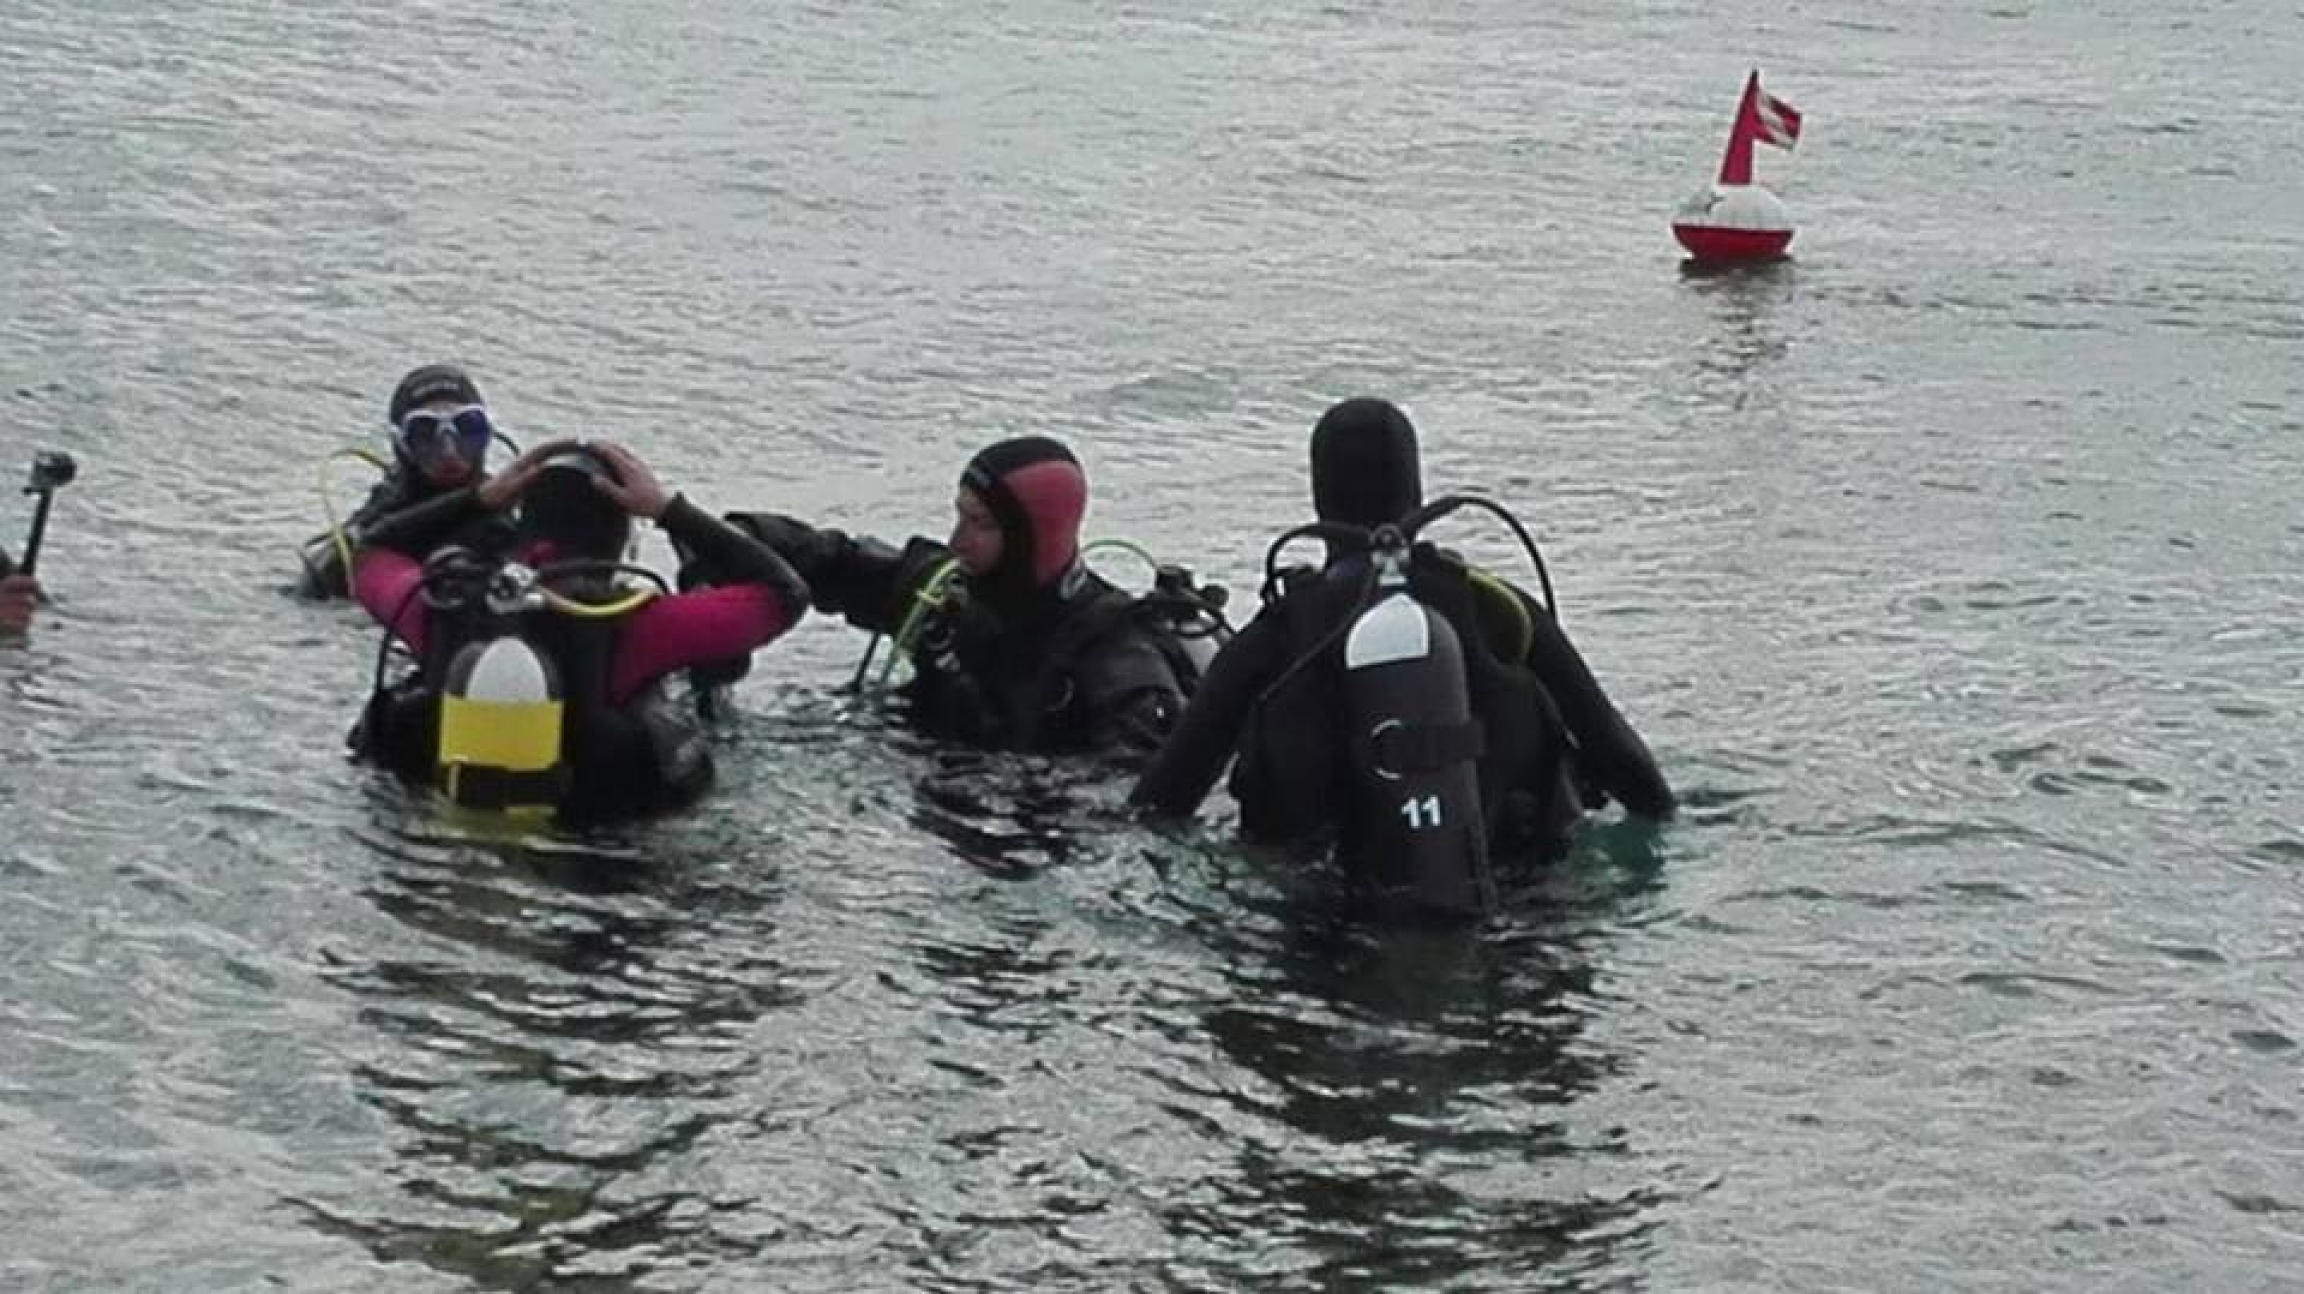 several people in water in scuba gear